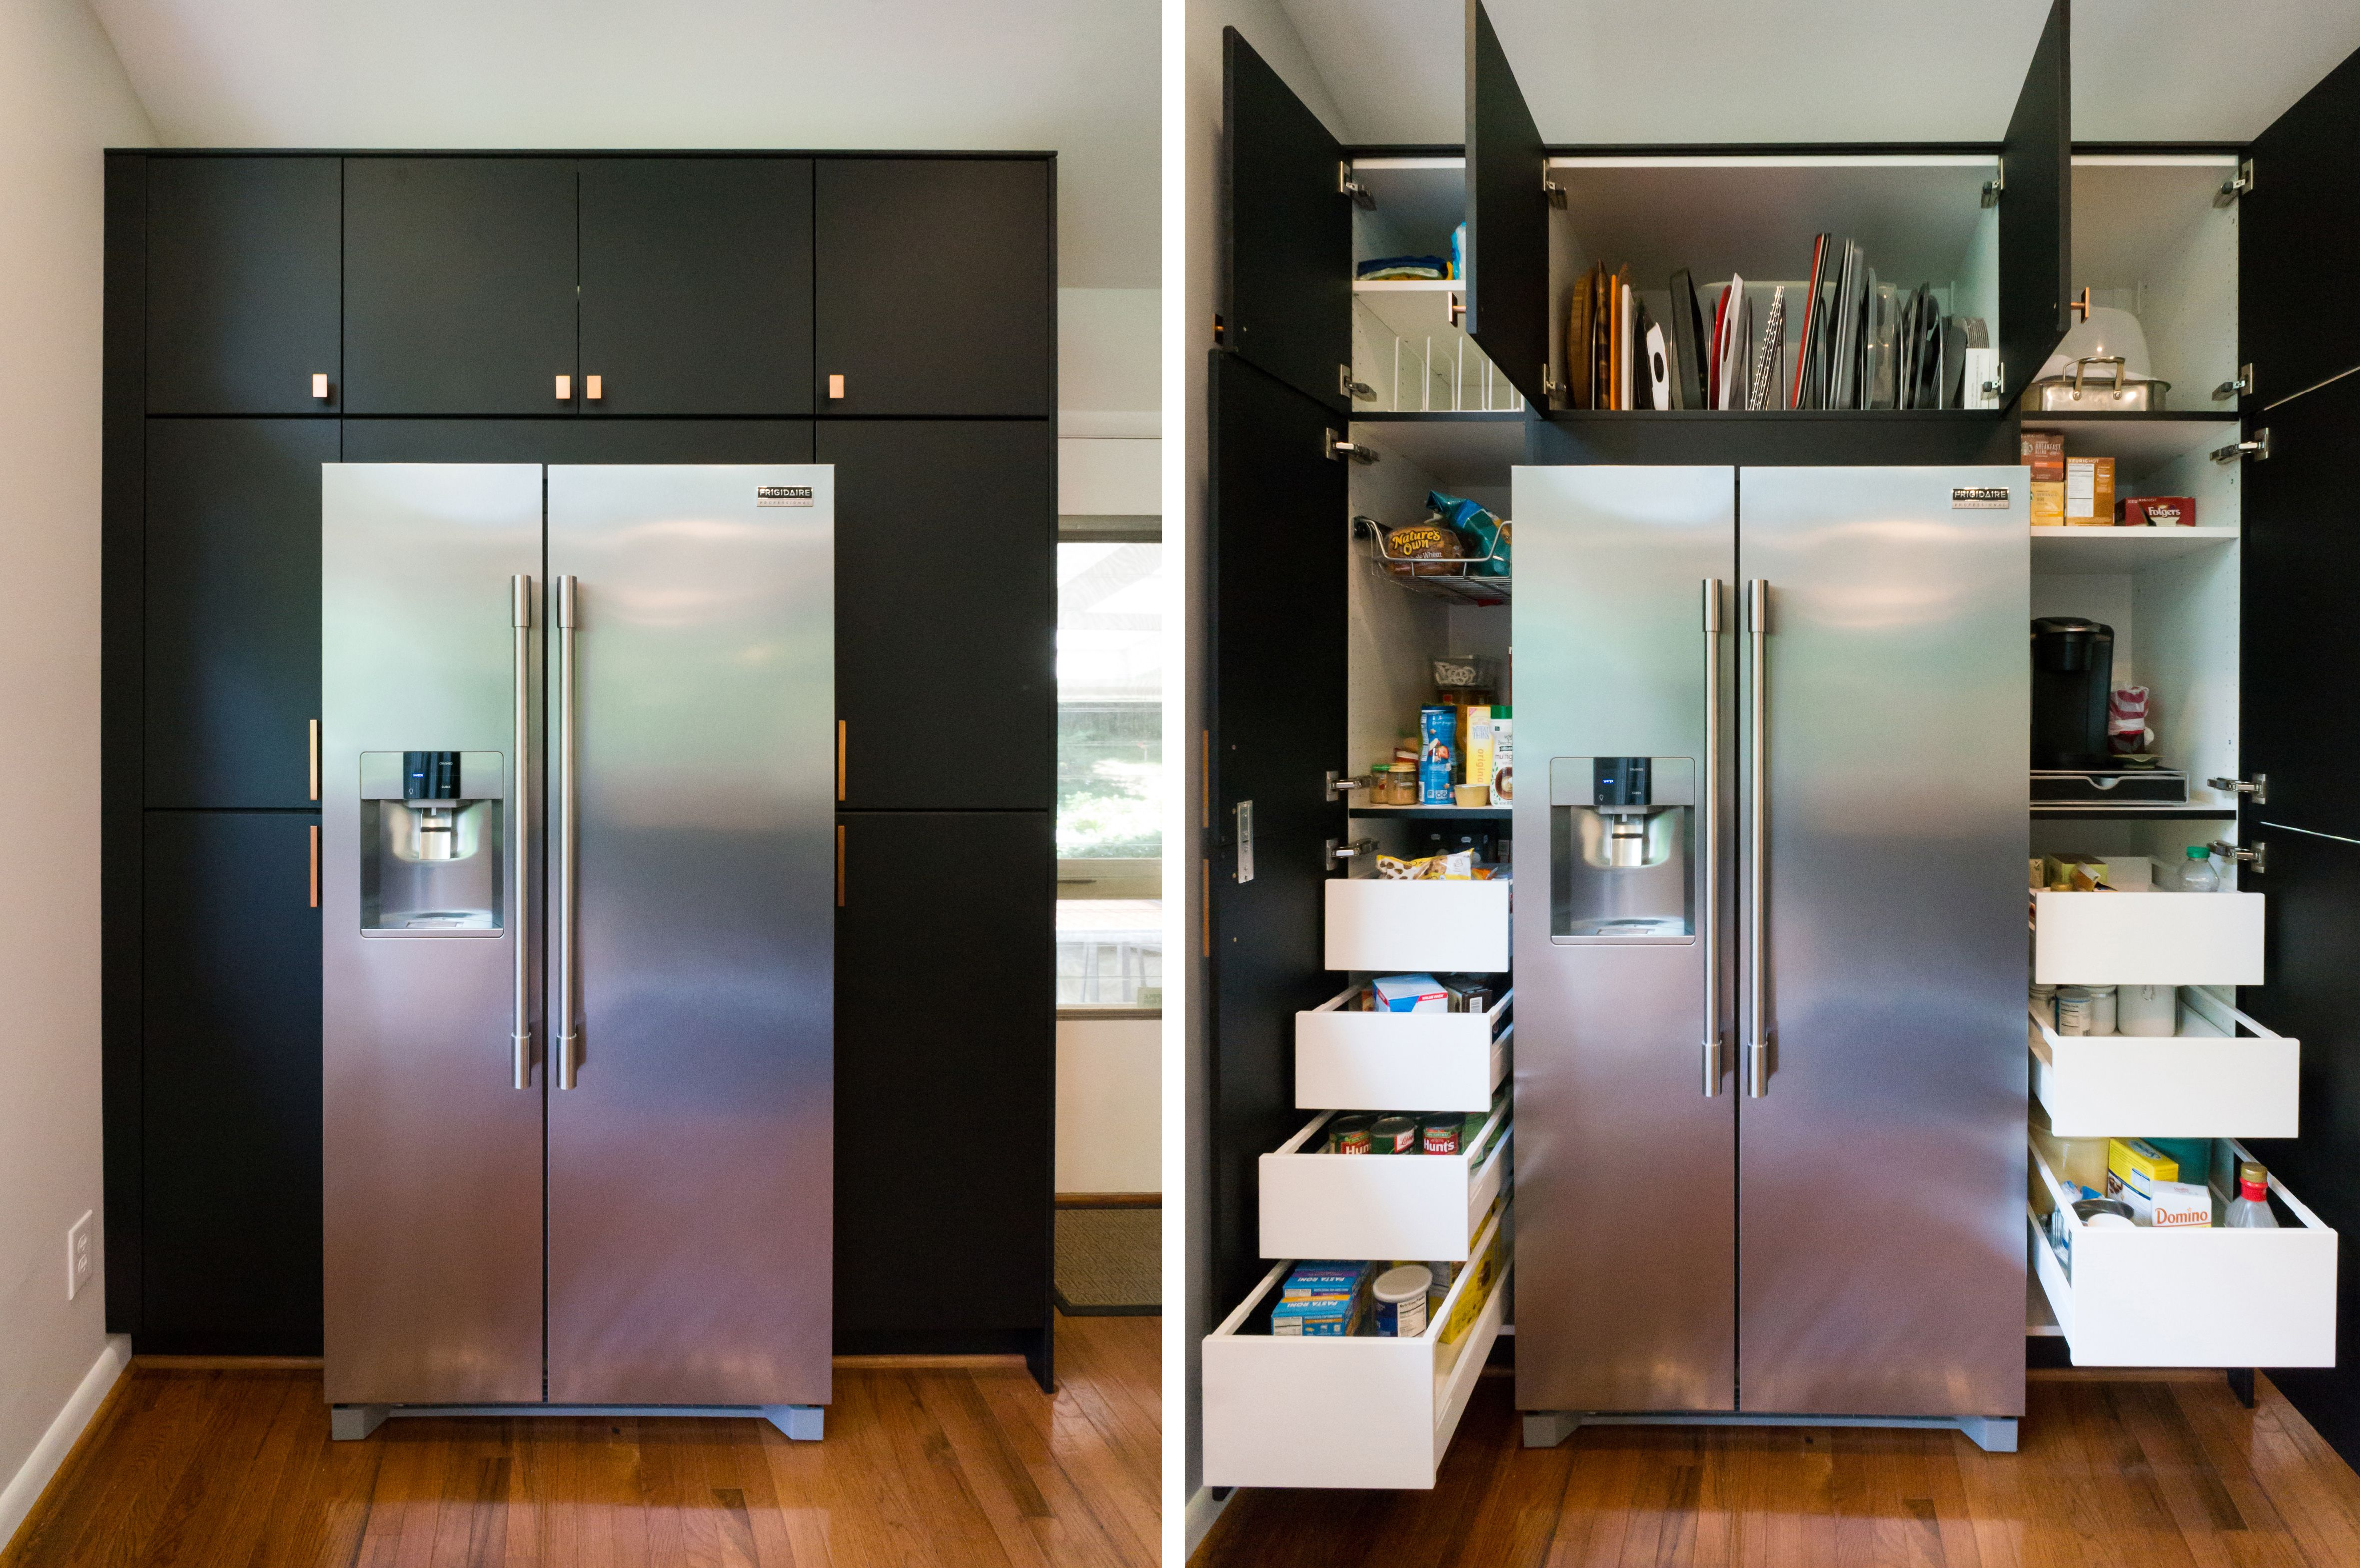 Modern Ikea Kitchen With Clean Lines And Smart Storage Waterfall